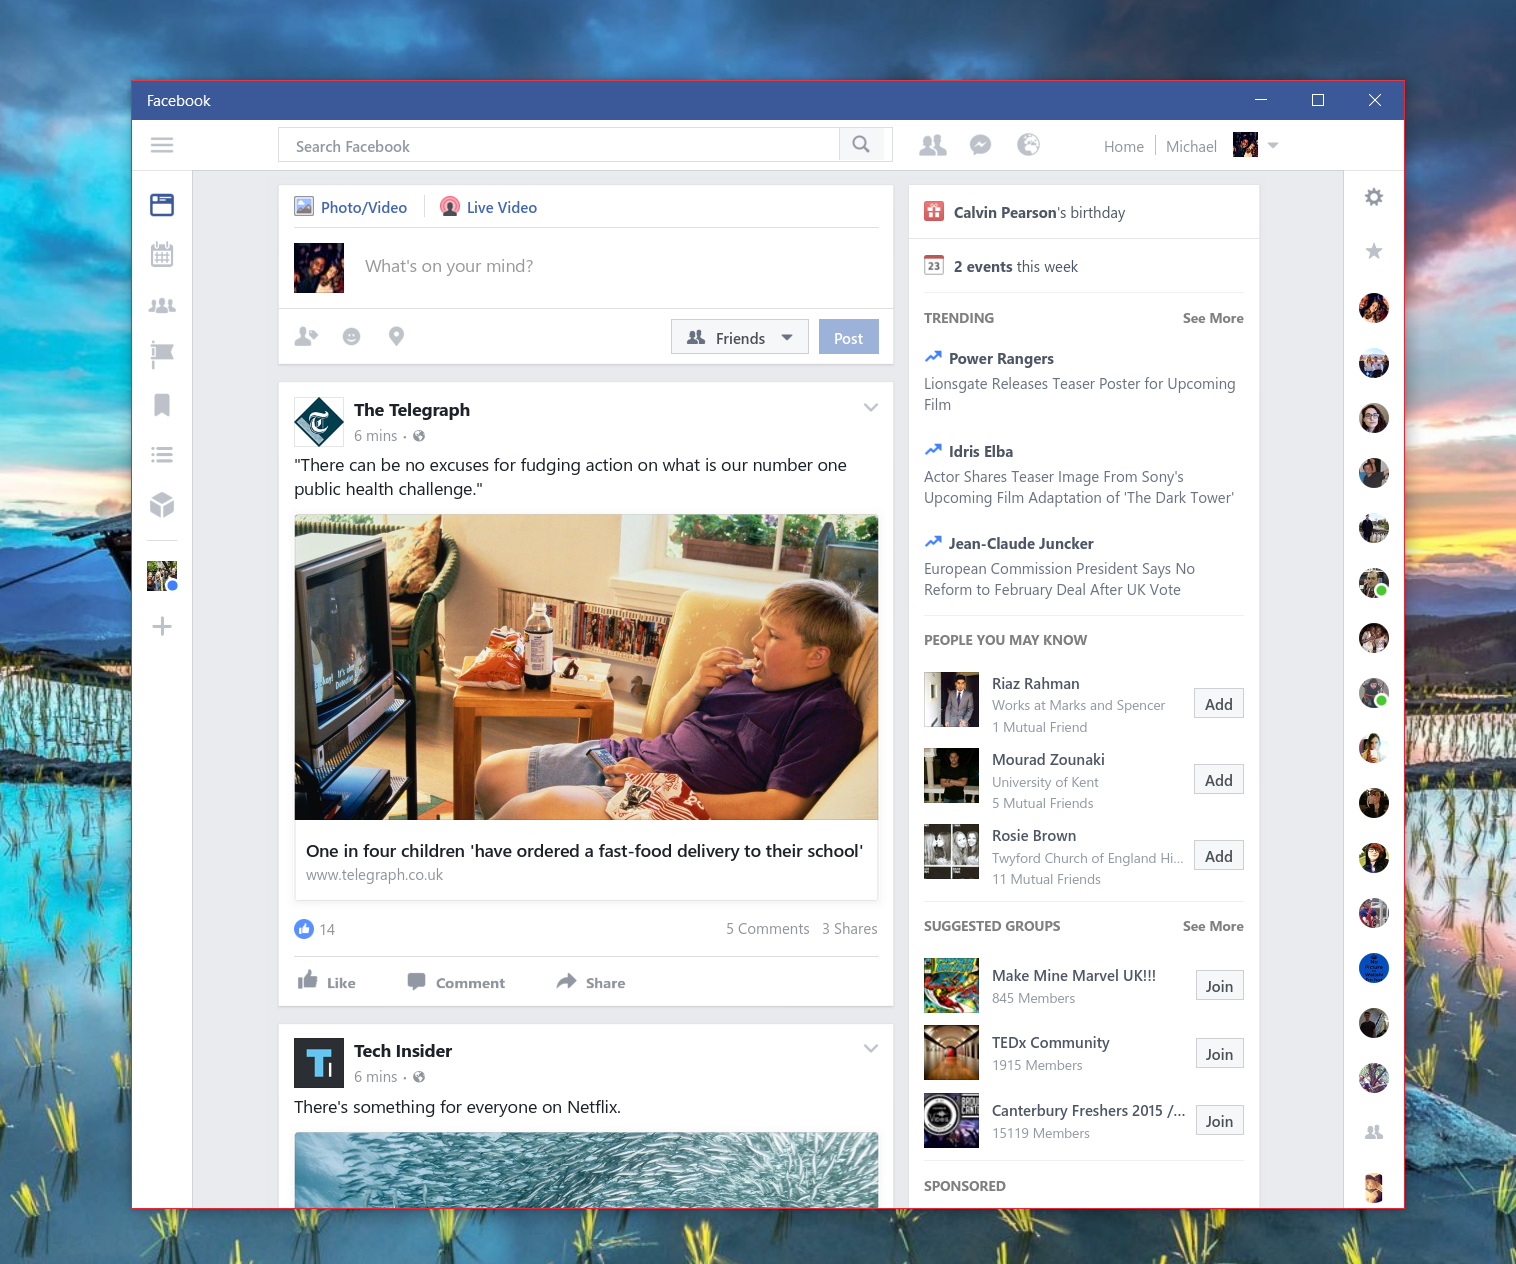 Facebook Beta for Windows 10 gets a new update - MSPoweruser